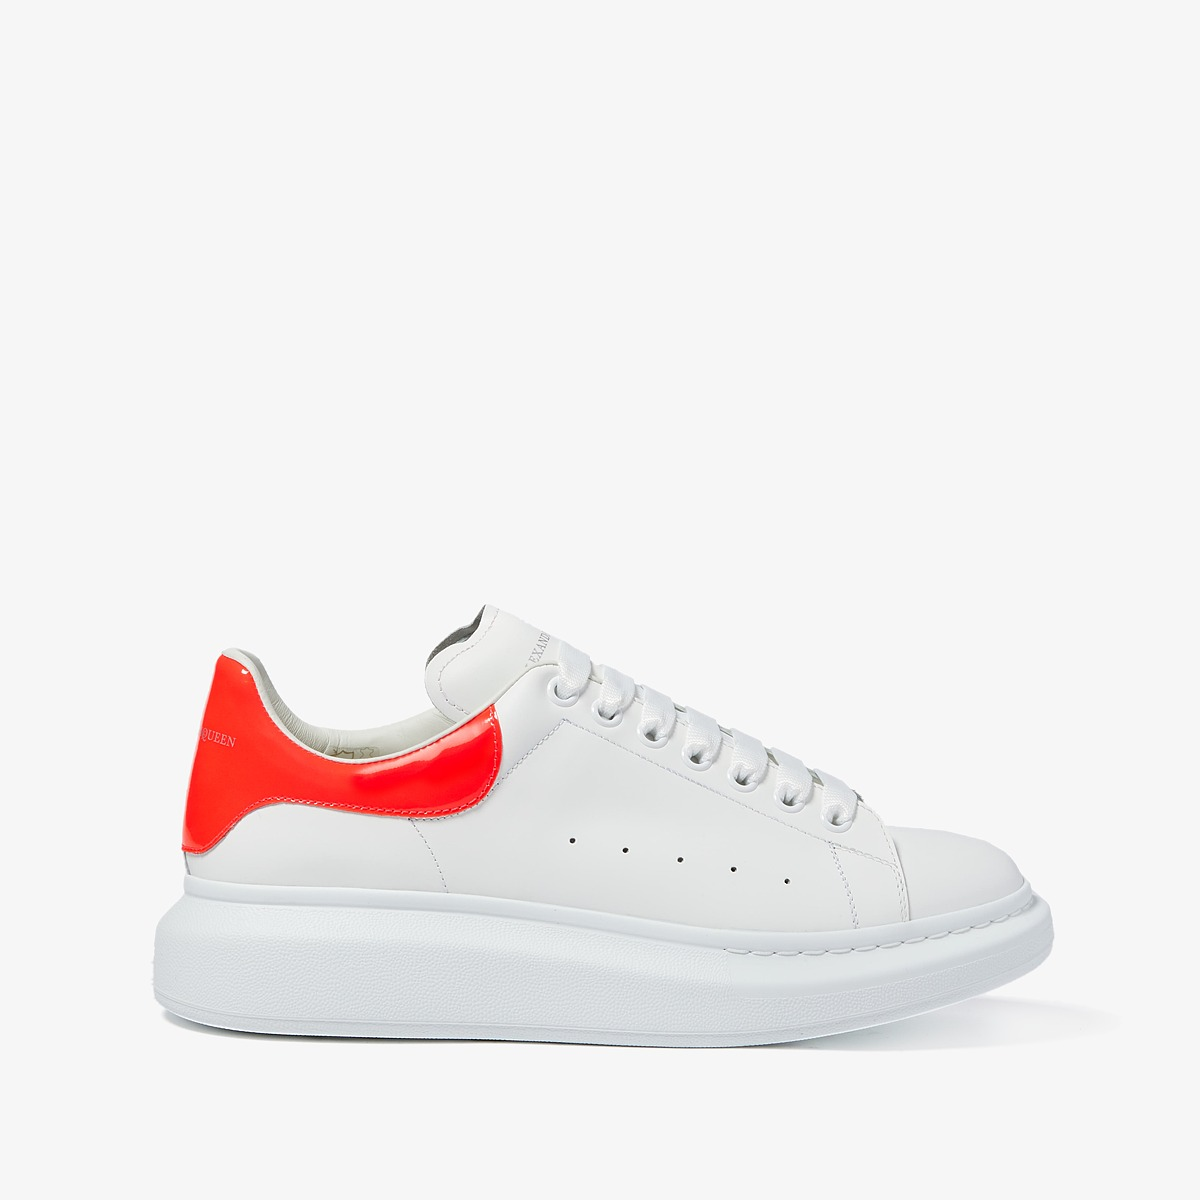 Alexander McQueen - Simple Double Sole Sneaker